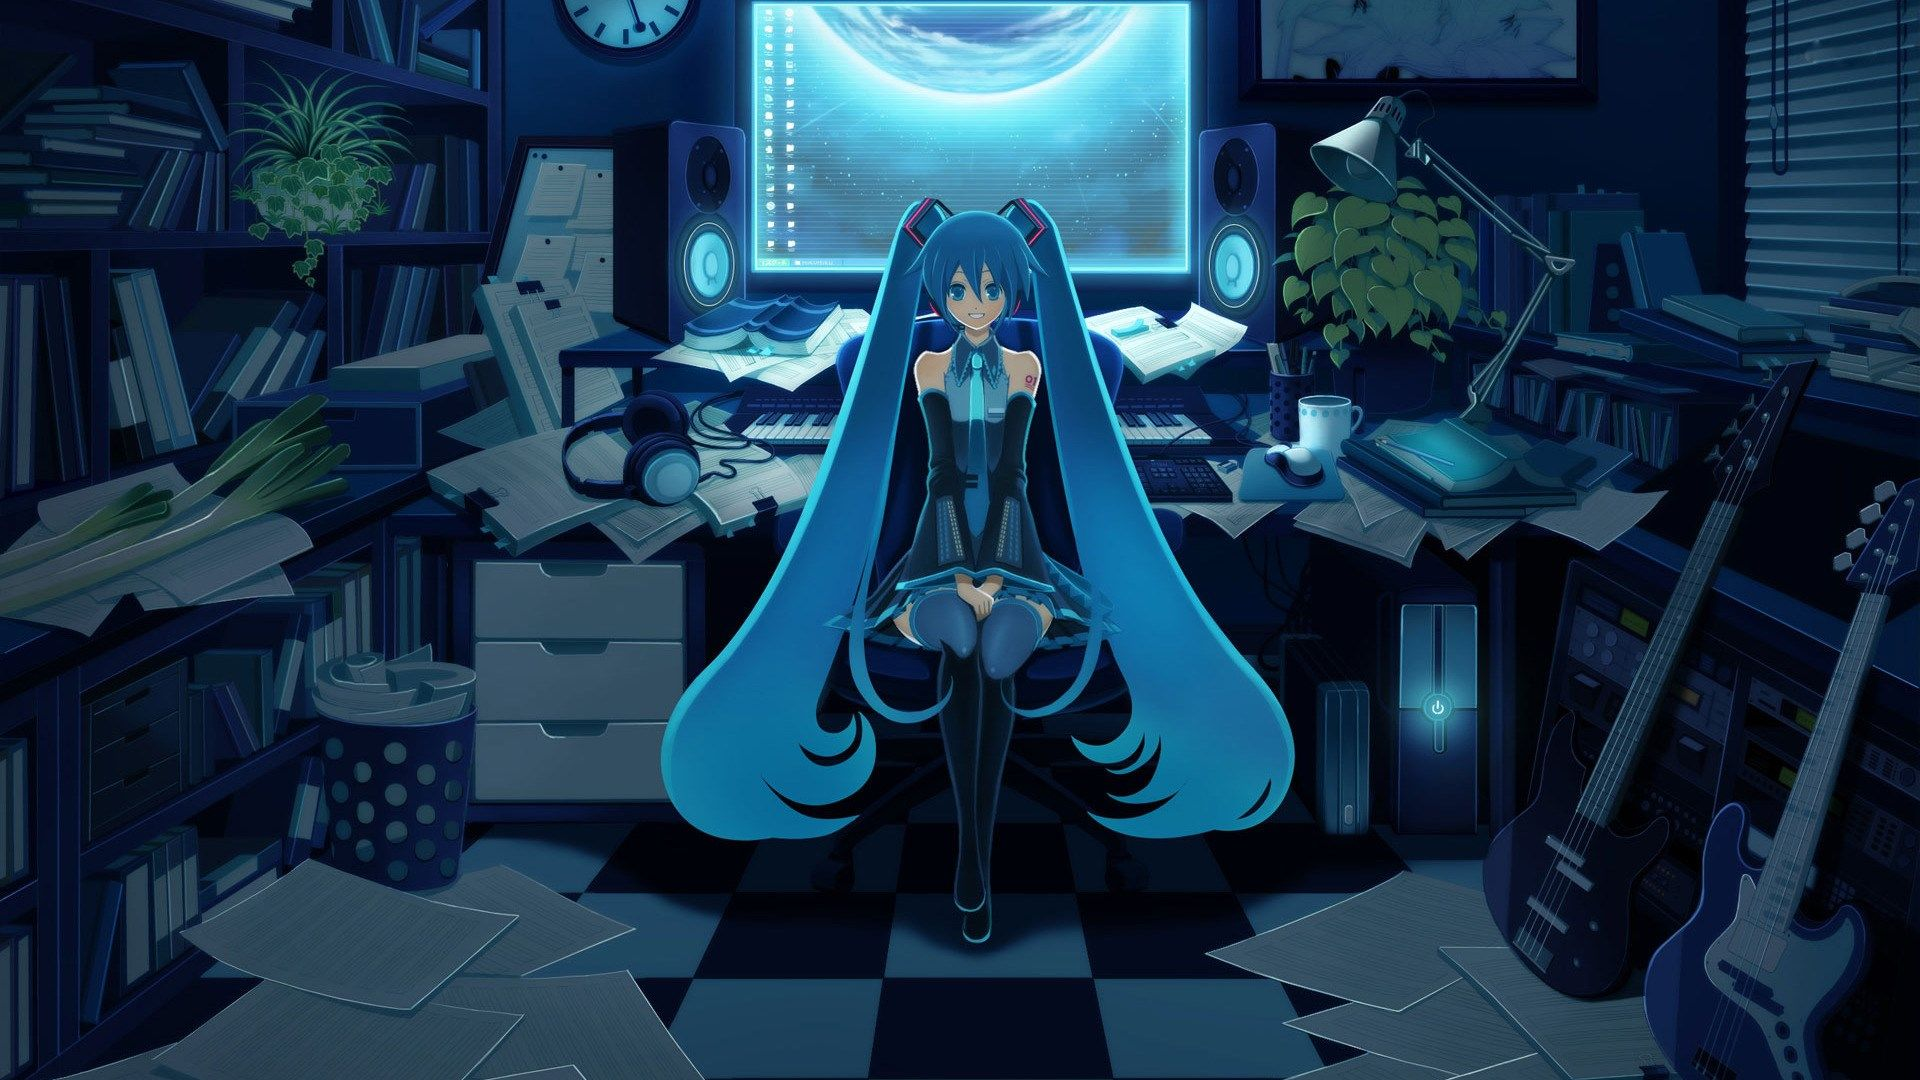 Hatsune Miku Vocaloid Anime 1920x1080 Wallpapers Hatsune Miku Vocaloid Anime Wallpaper